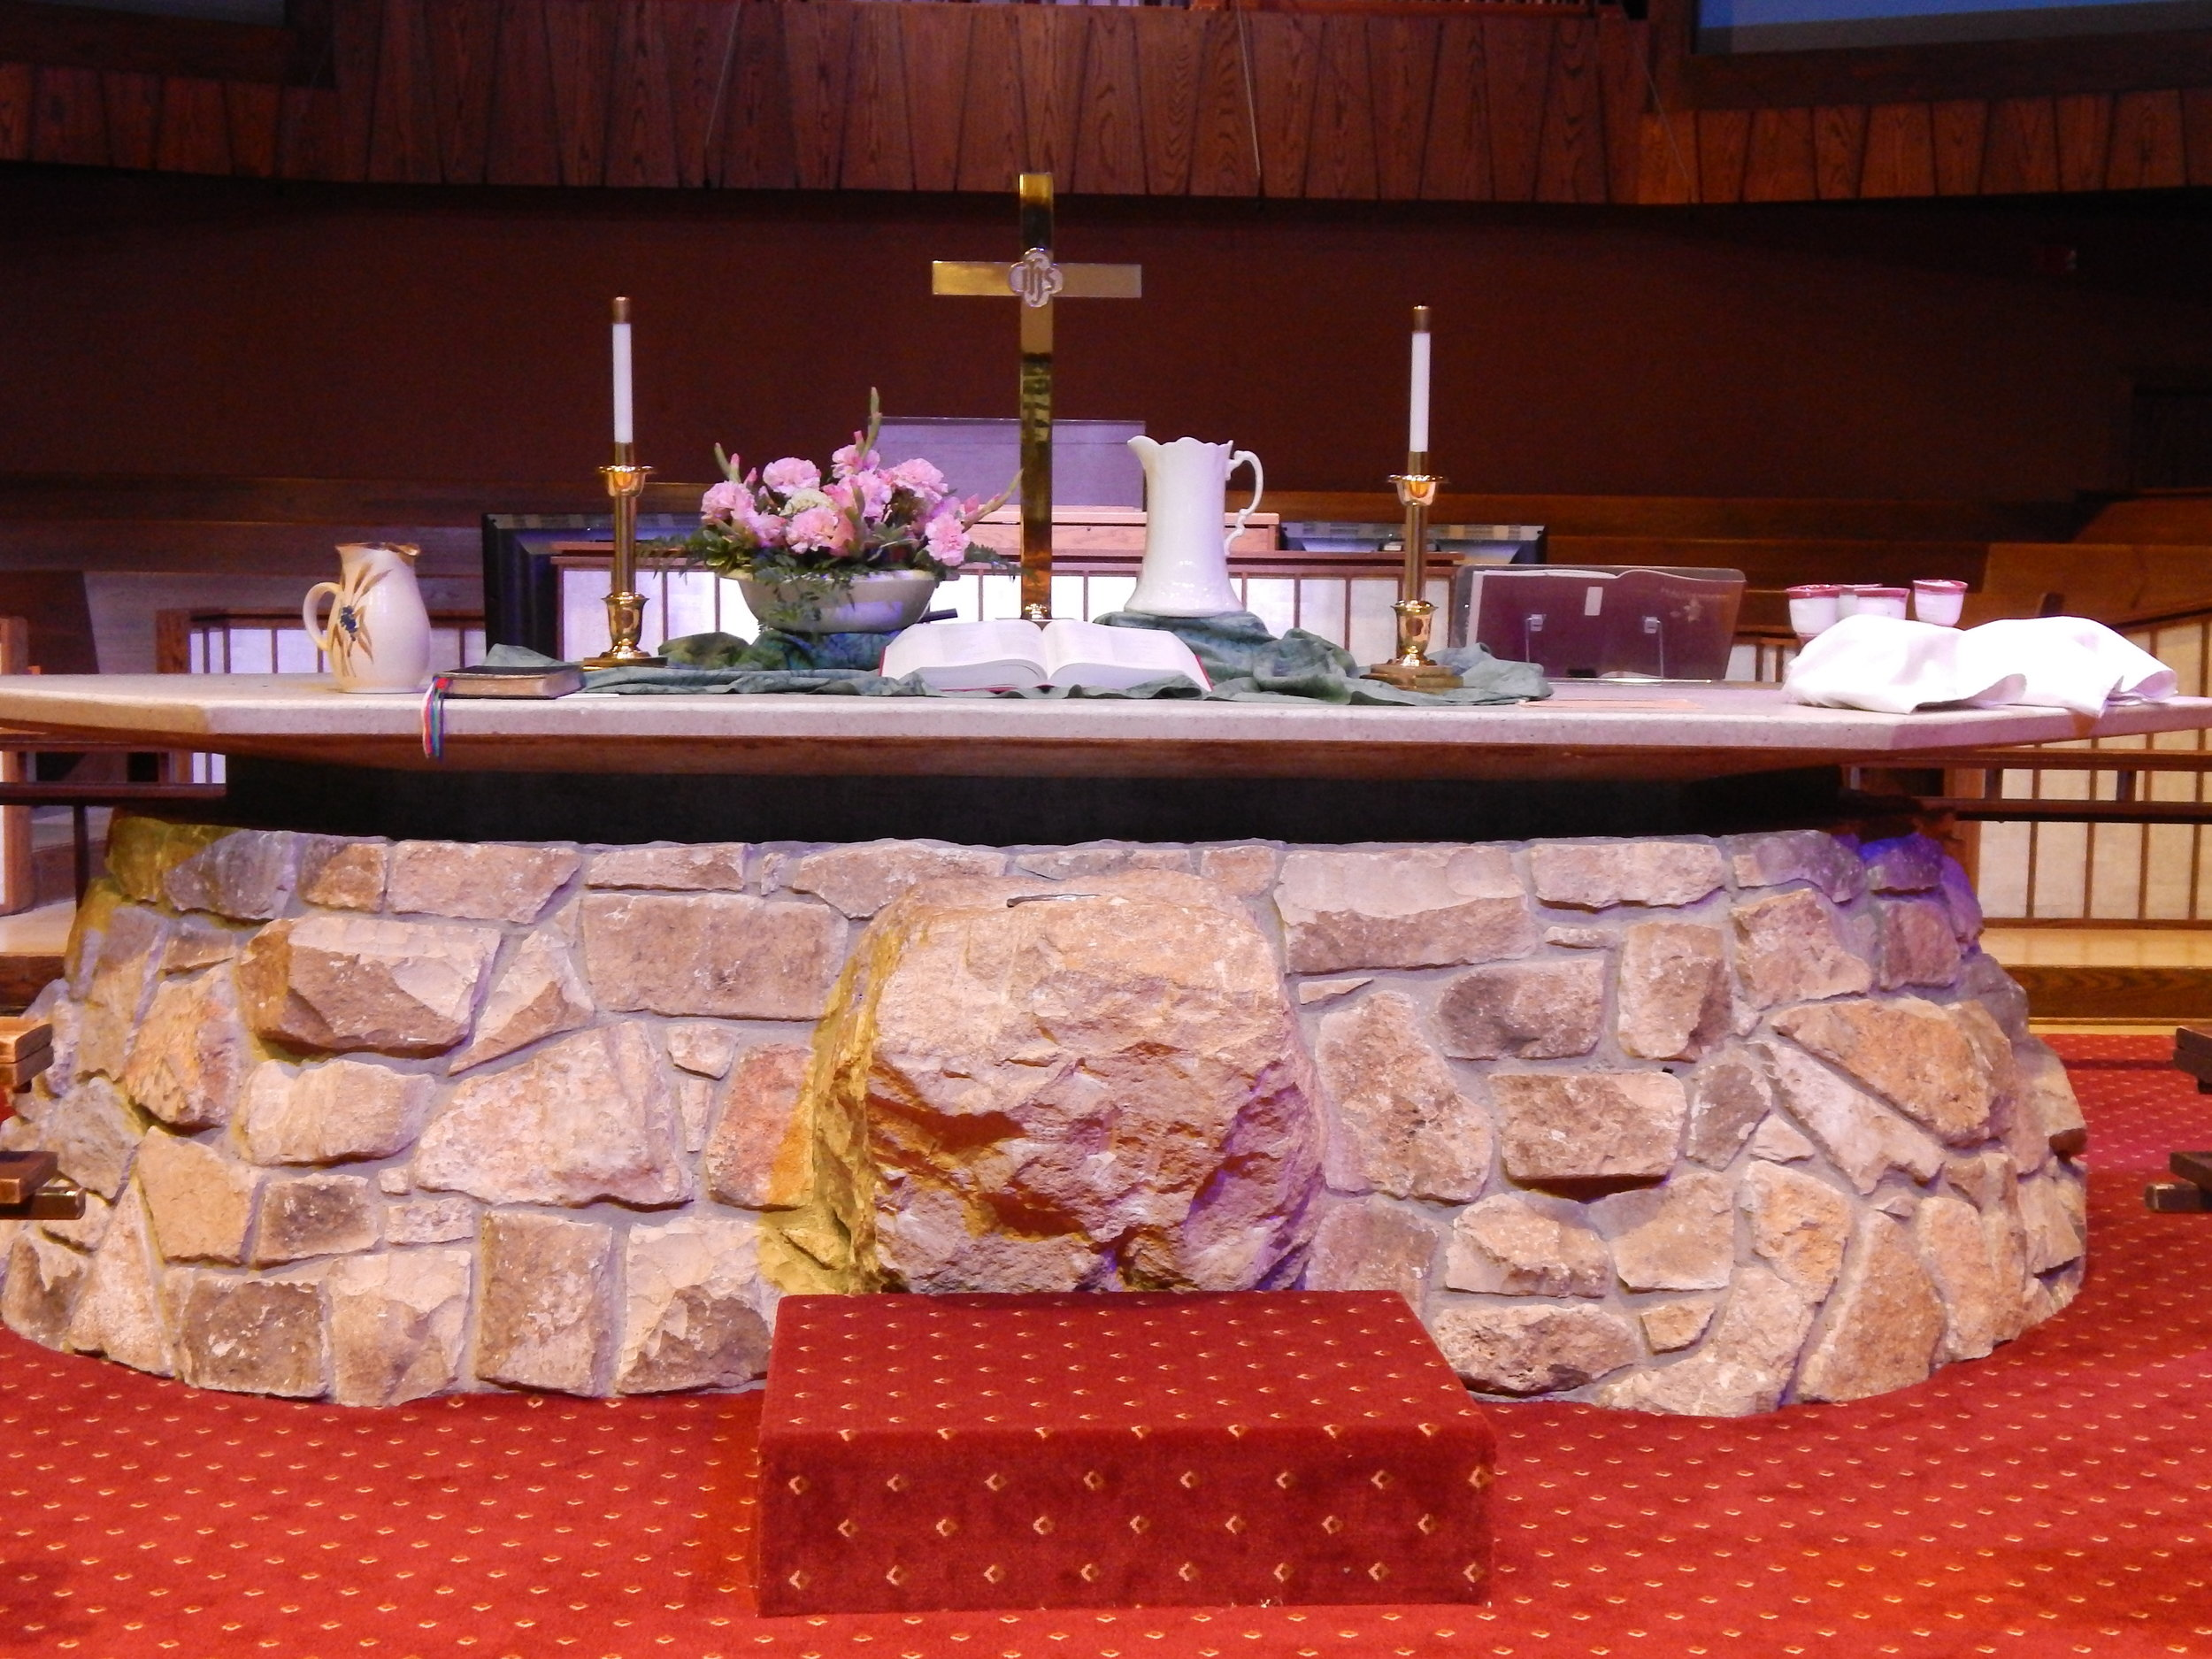 "ALTAR - Conspicuous by its size and location is the great freestanding stone ALTAR, designed so that people can gather around it as the center of sacrifice.  The two United Methodist sacraments, Baptism and Holy Communion, are keys to this area's use.  The Baptismal Font is attached to the front of the altar and the communion rail extends around the altar so that the participants can become ""a family of God gathered around the Lord's table""."